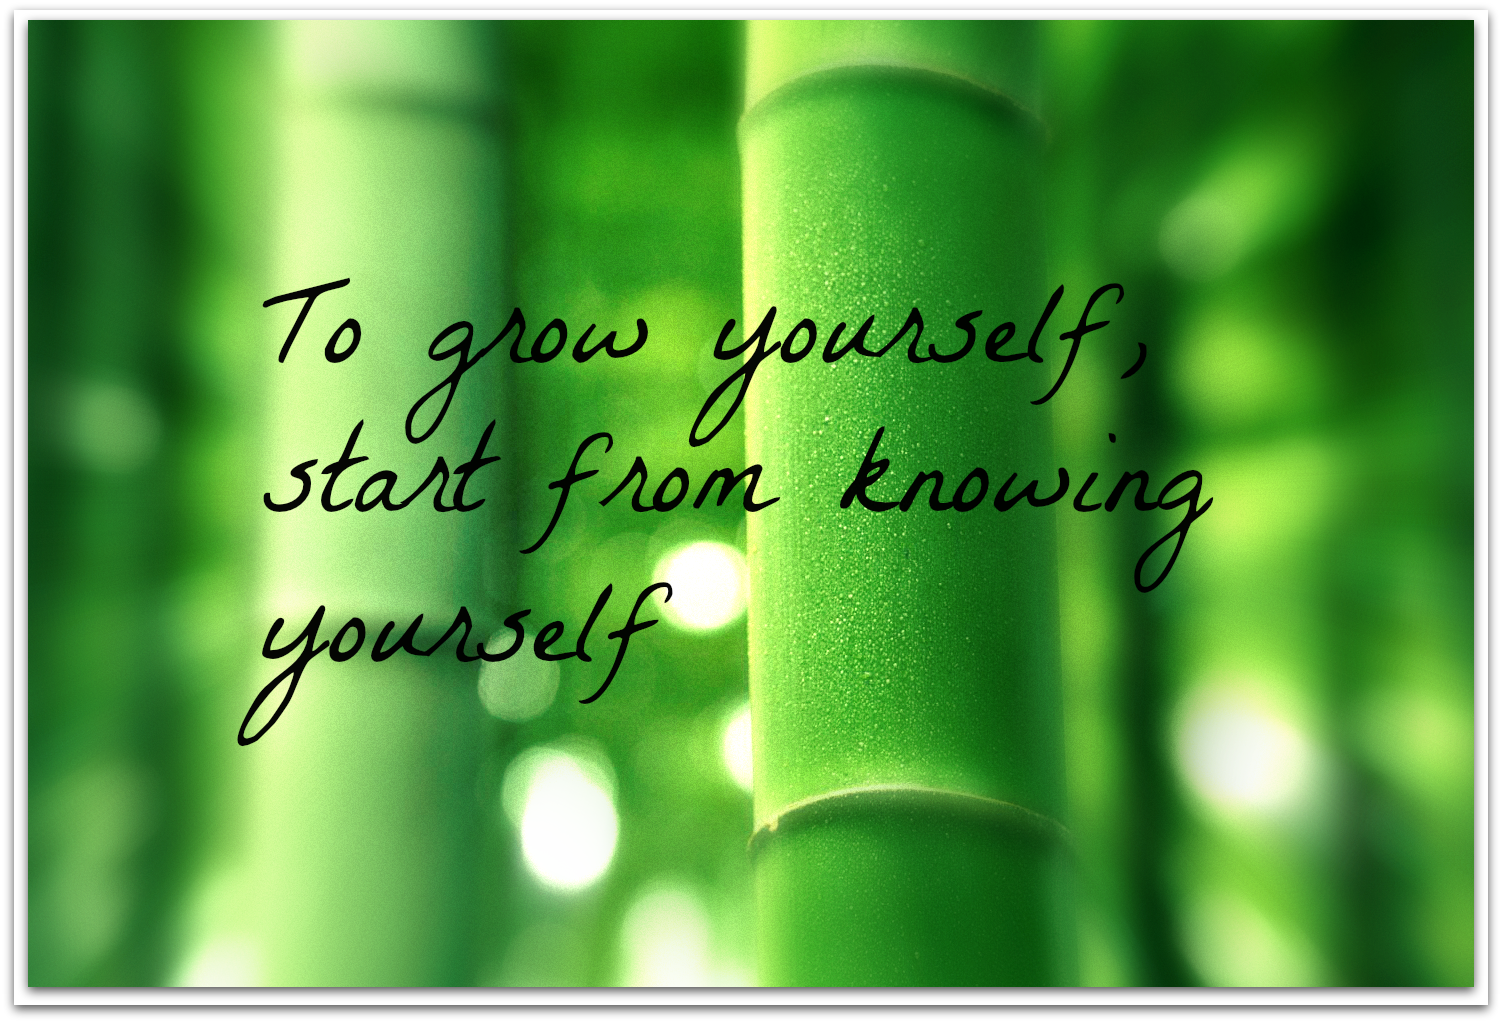 growth personal grow quotes quote development yourself sayings maturity career knowing start self spiritual business quotesgram bamboo hello december famous